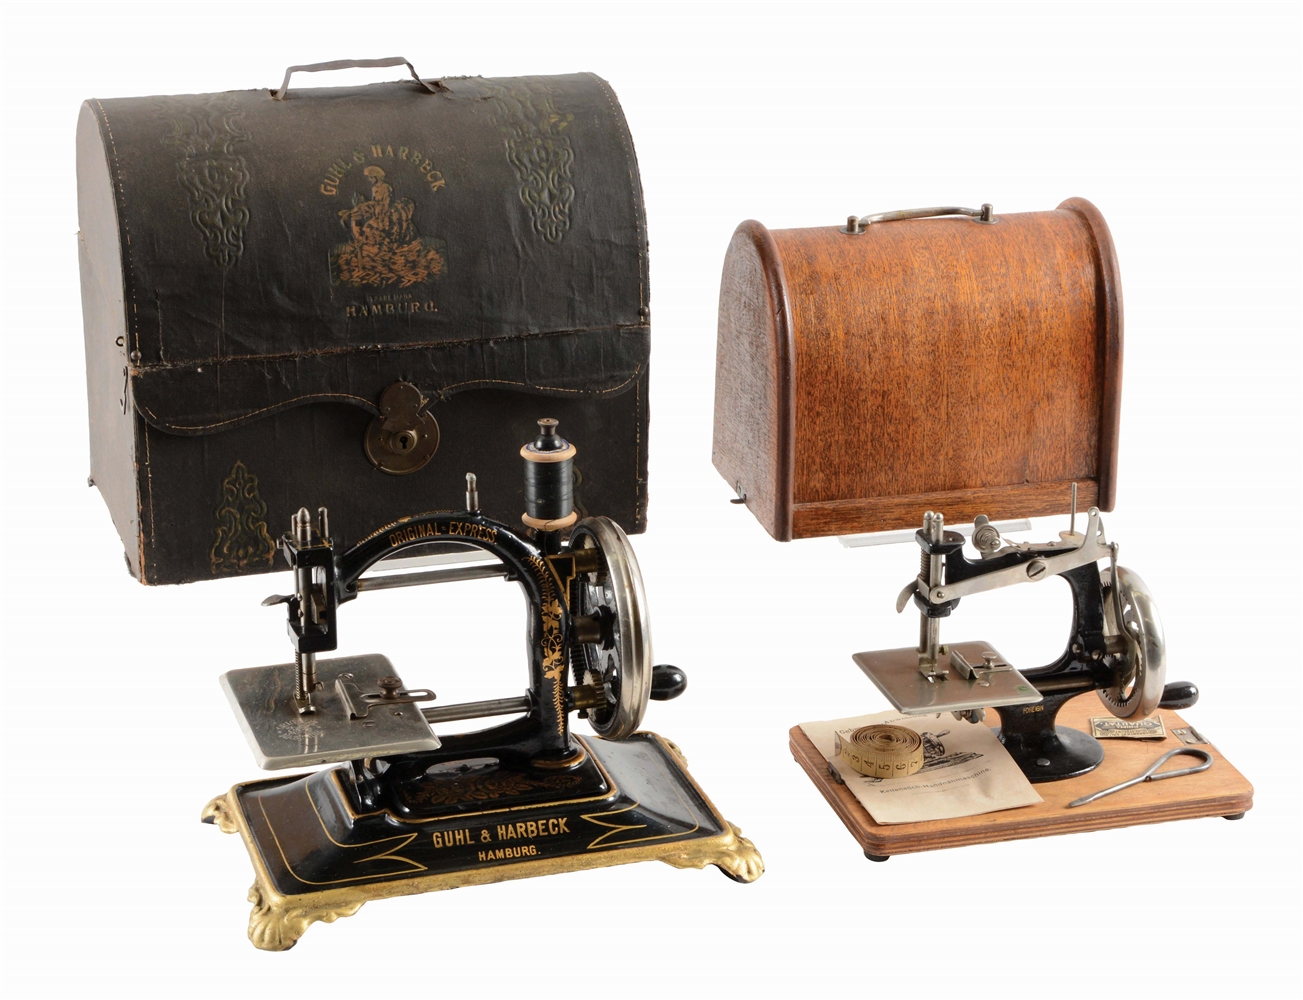 LOT OF 2: SEWING MACHINES BY GUHL AND HARBECK.